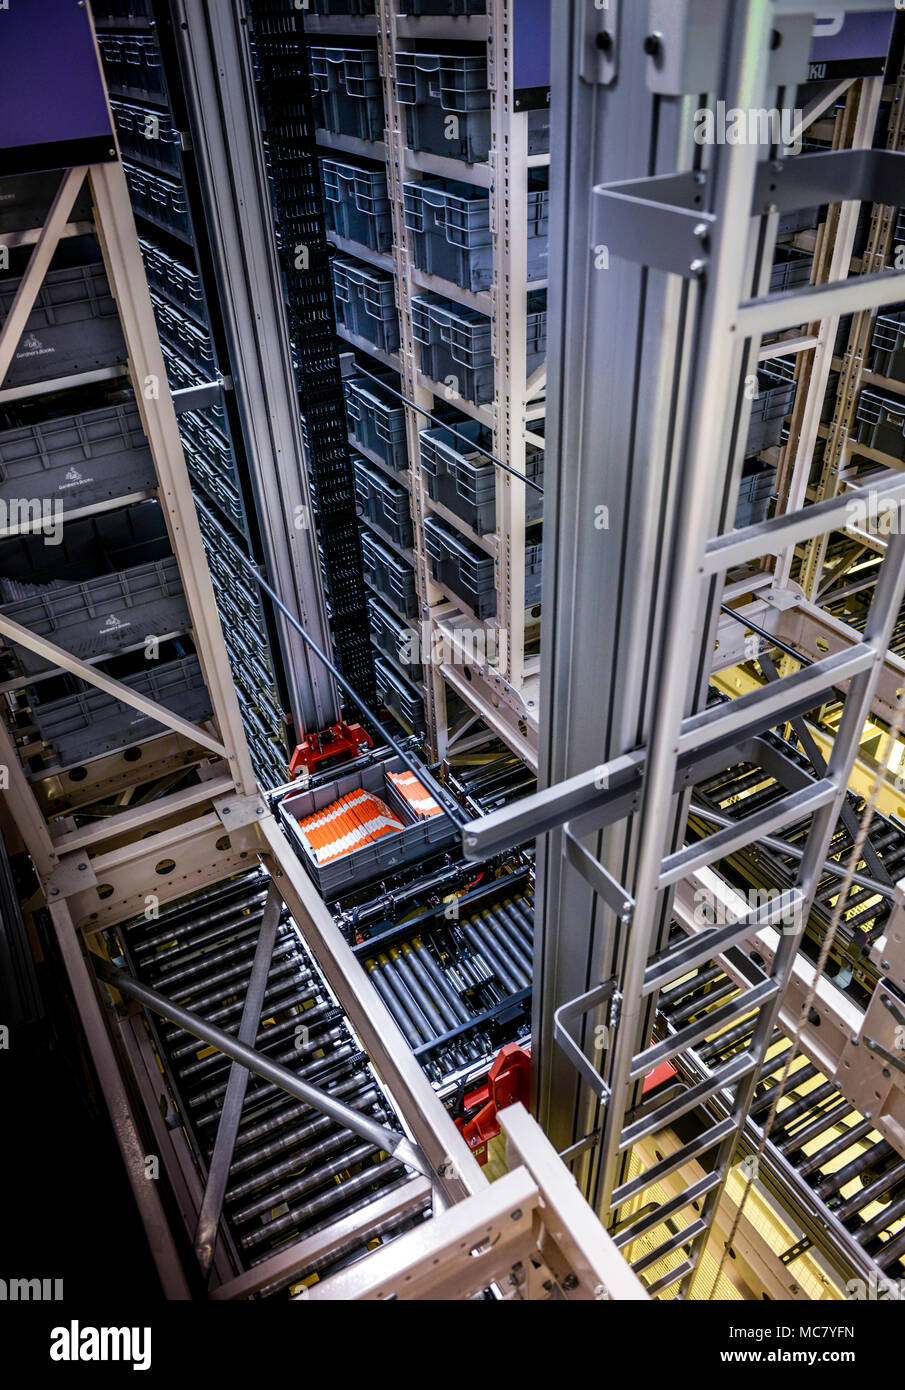 The Automated Warehouse At Gardners Books In Eastbourne, UK.   Stock Image